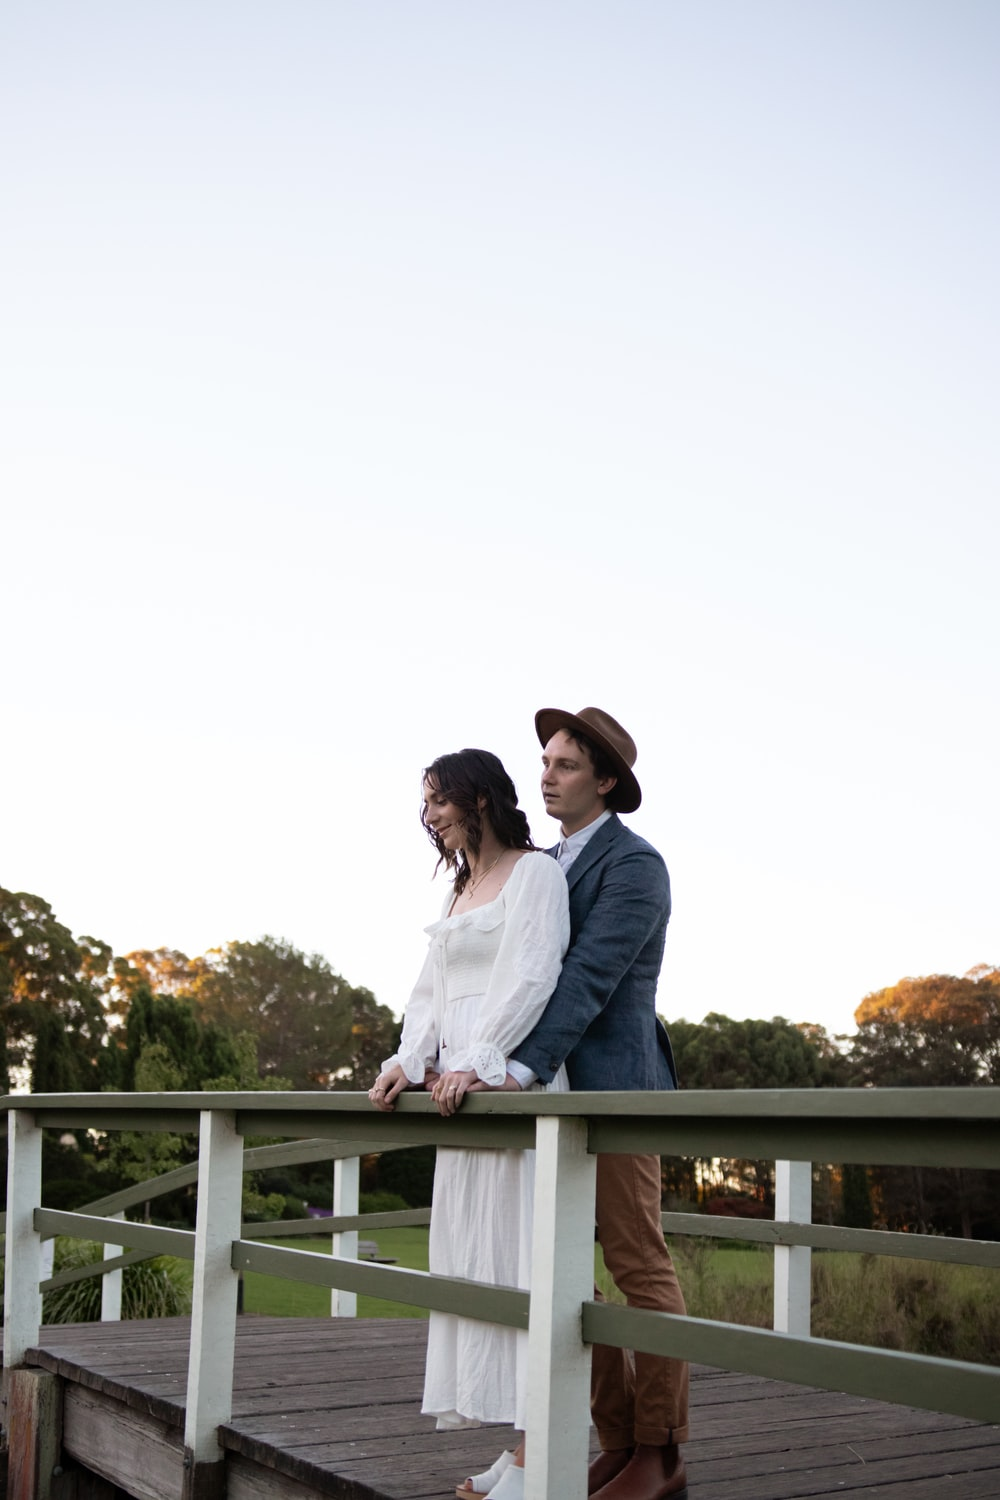 man in white dress shirt and woman in white dress standing on white wooden bridge during